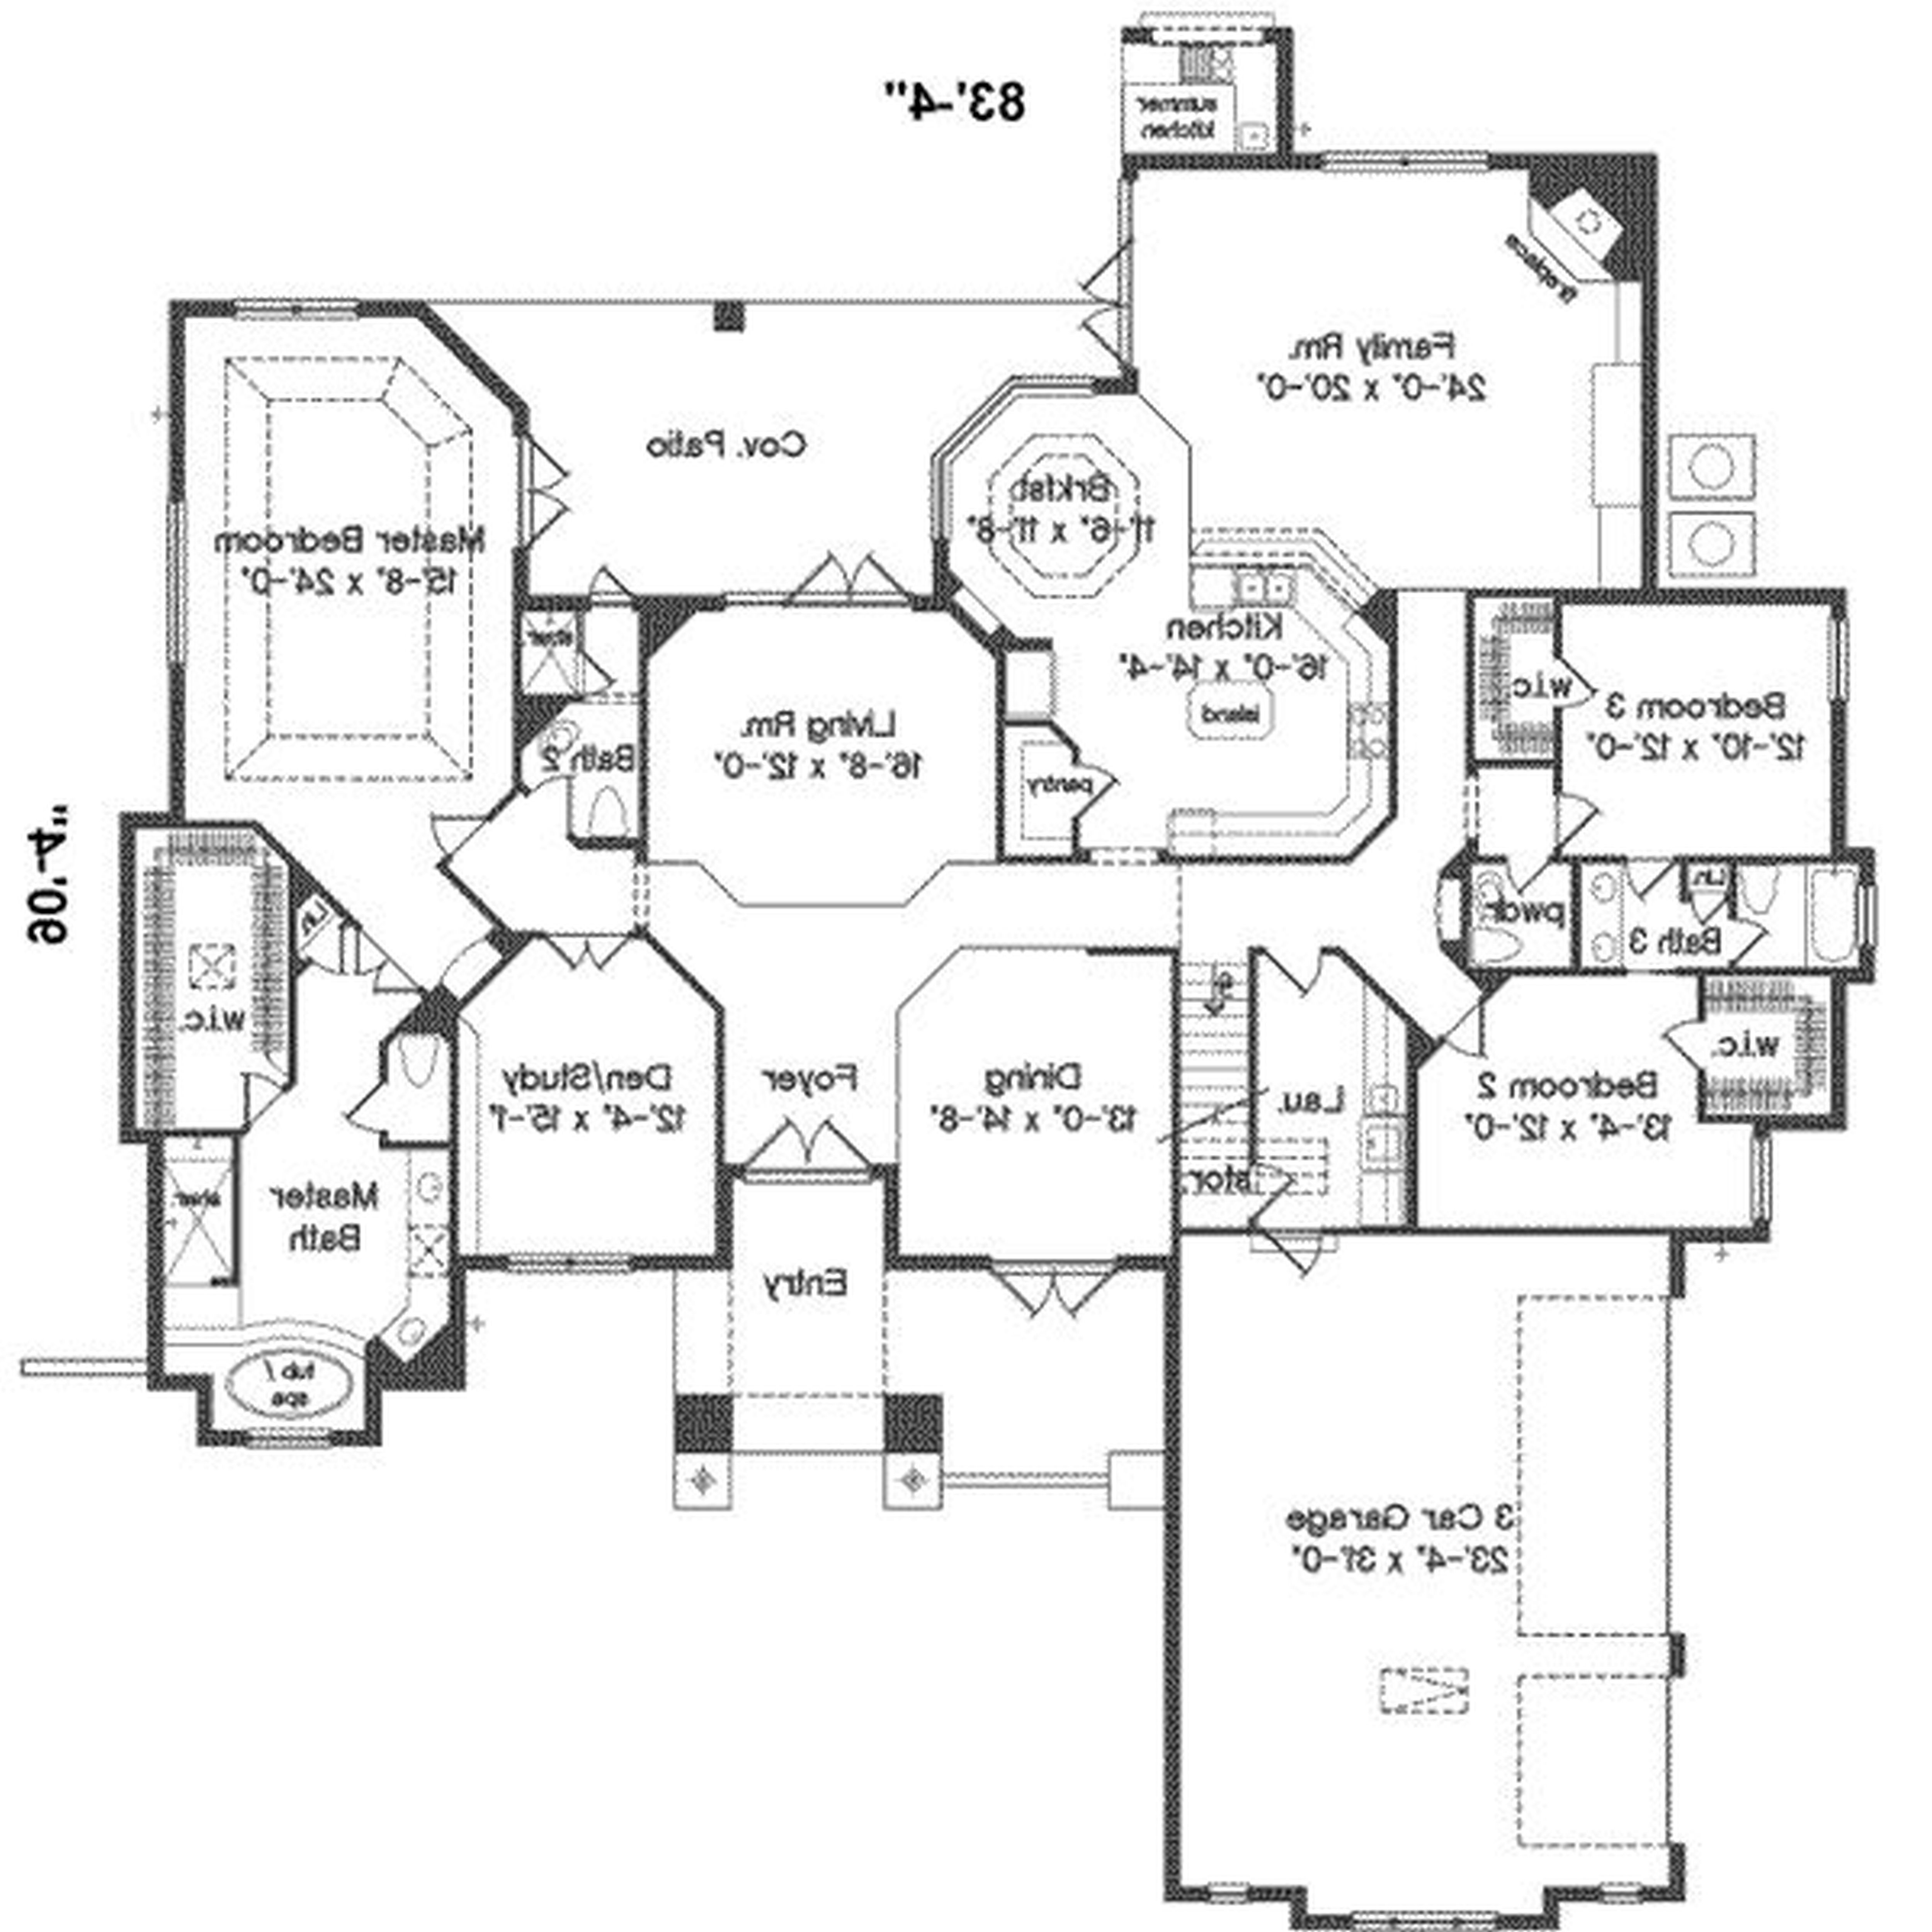 Simple white house drawing at getdrawings free for personal 5000x5000 architecture free floor plan maker designs cad design drawing malvernweather Choice Image